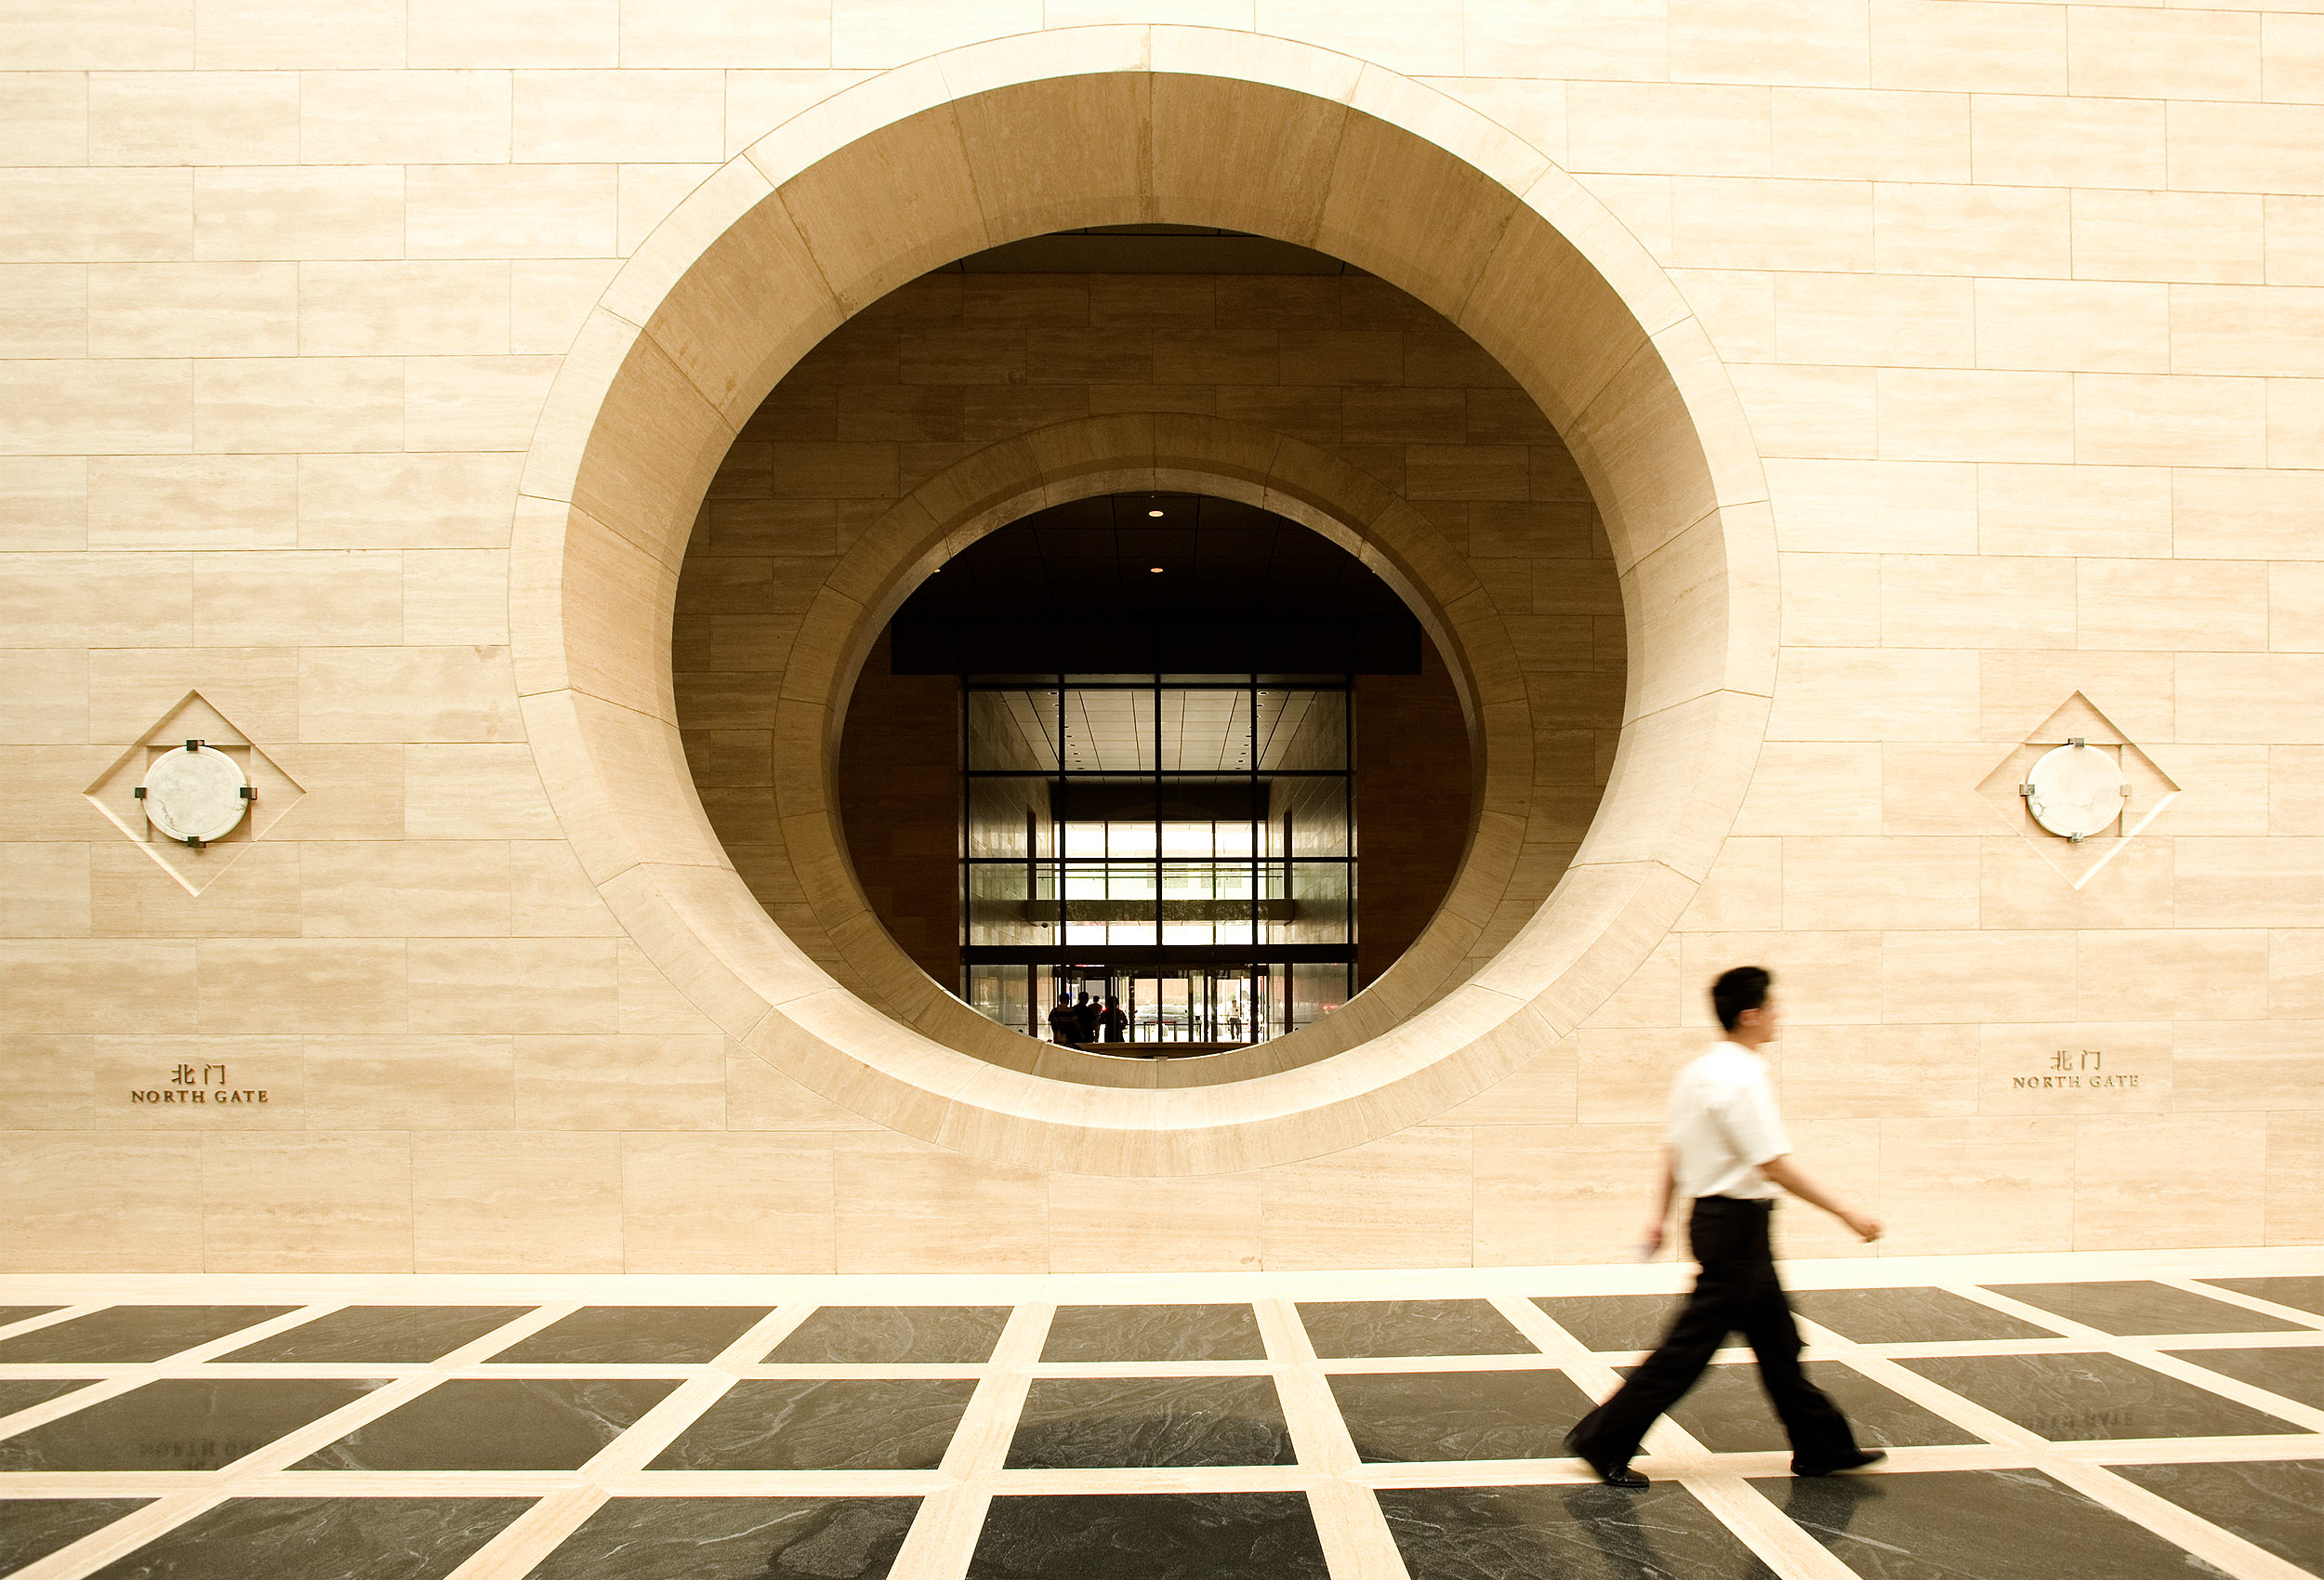 Bank of China in Beijing, China by architectural photographer Kristopher Grunert